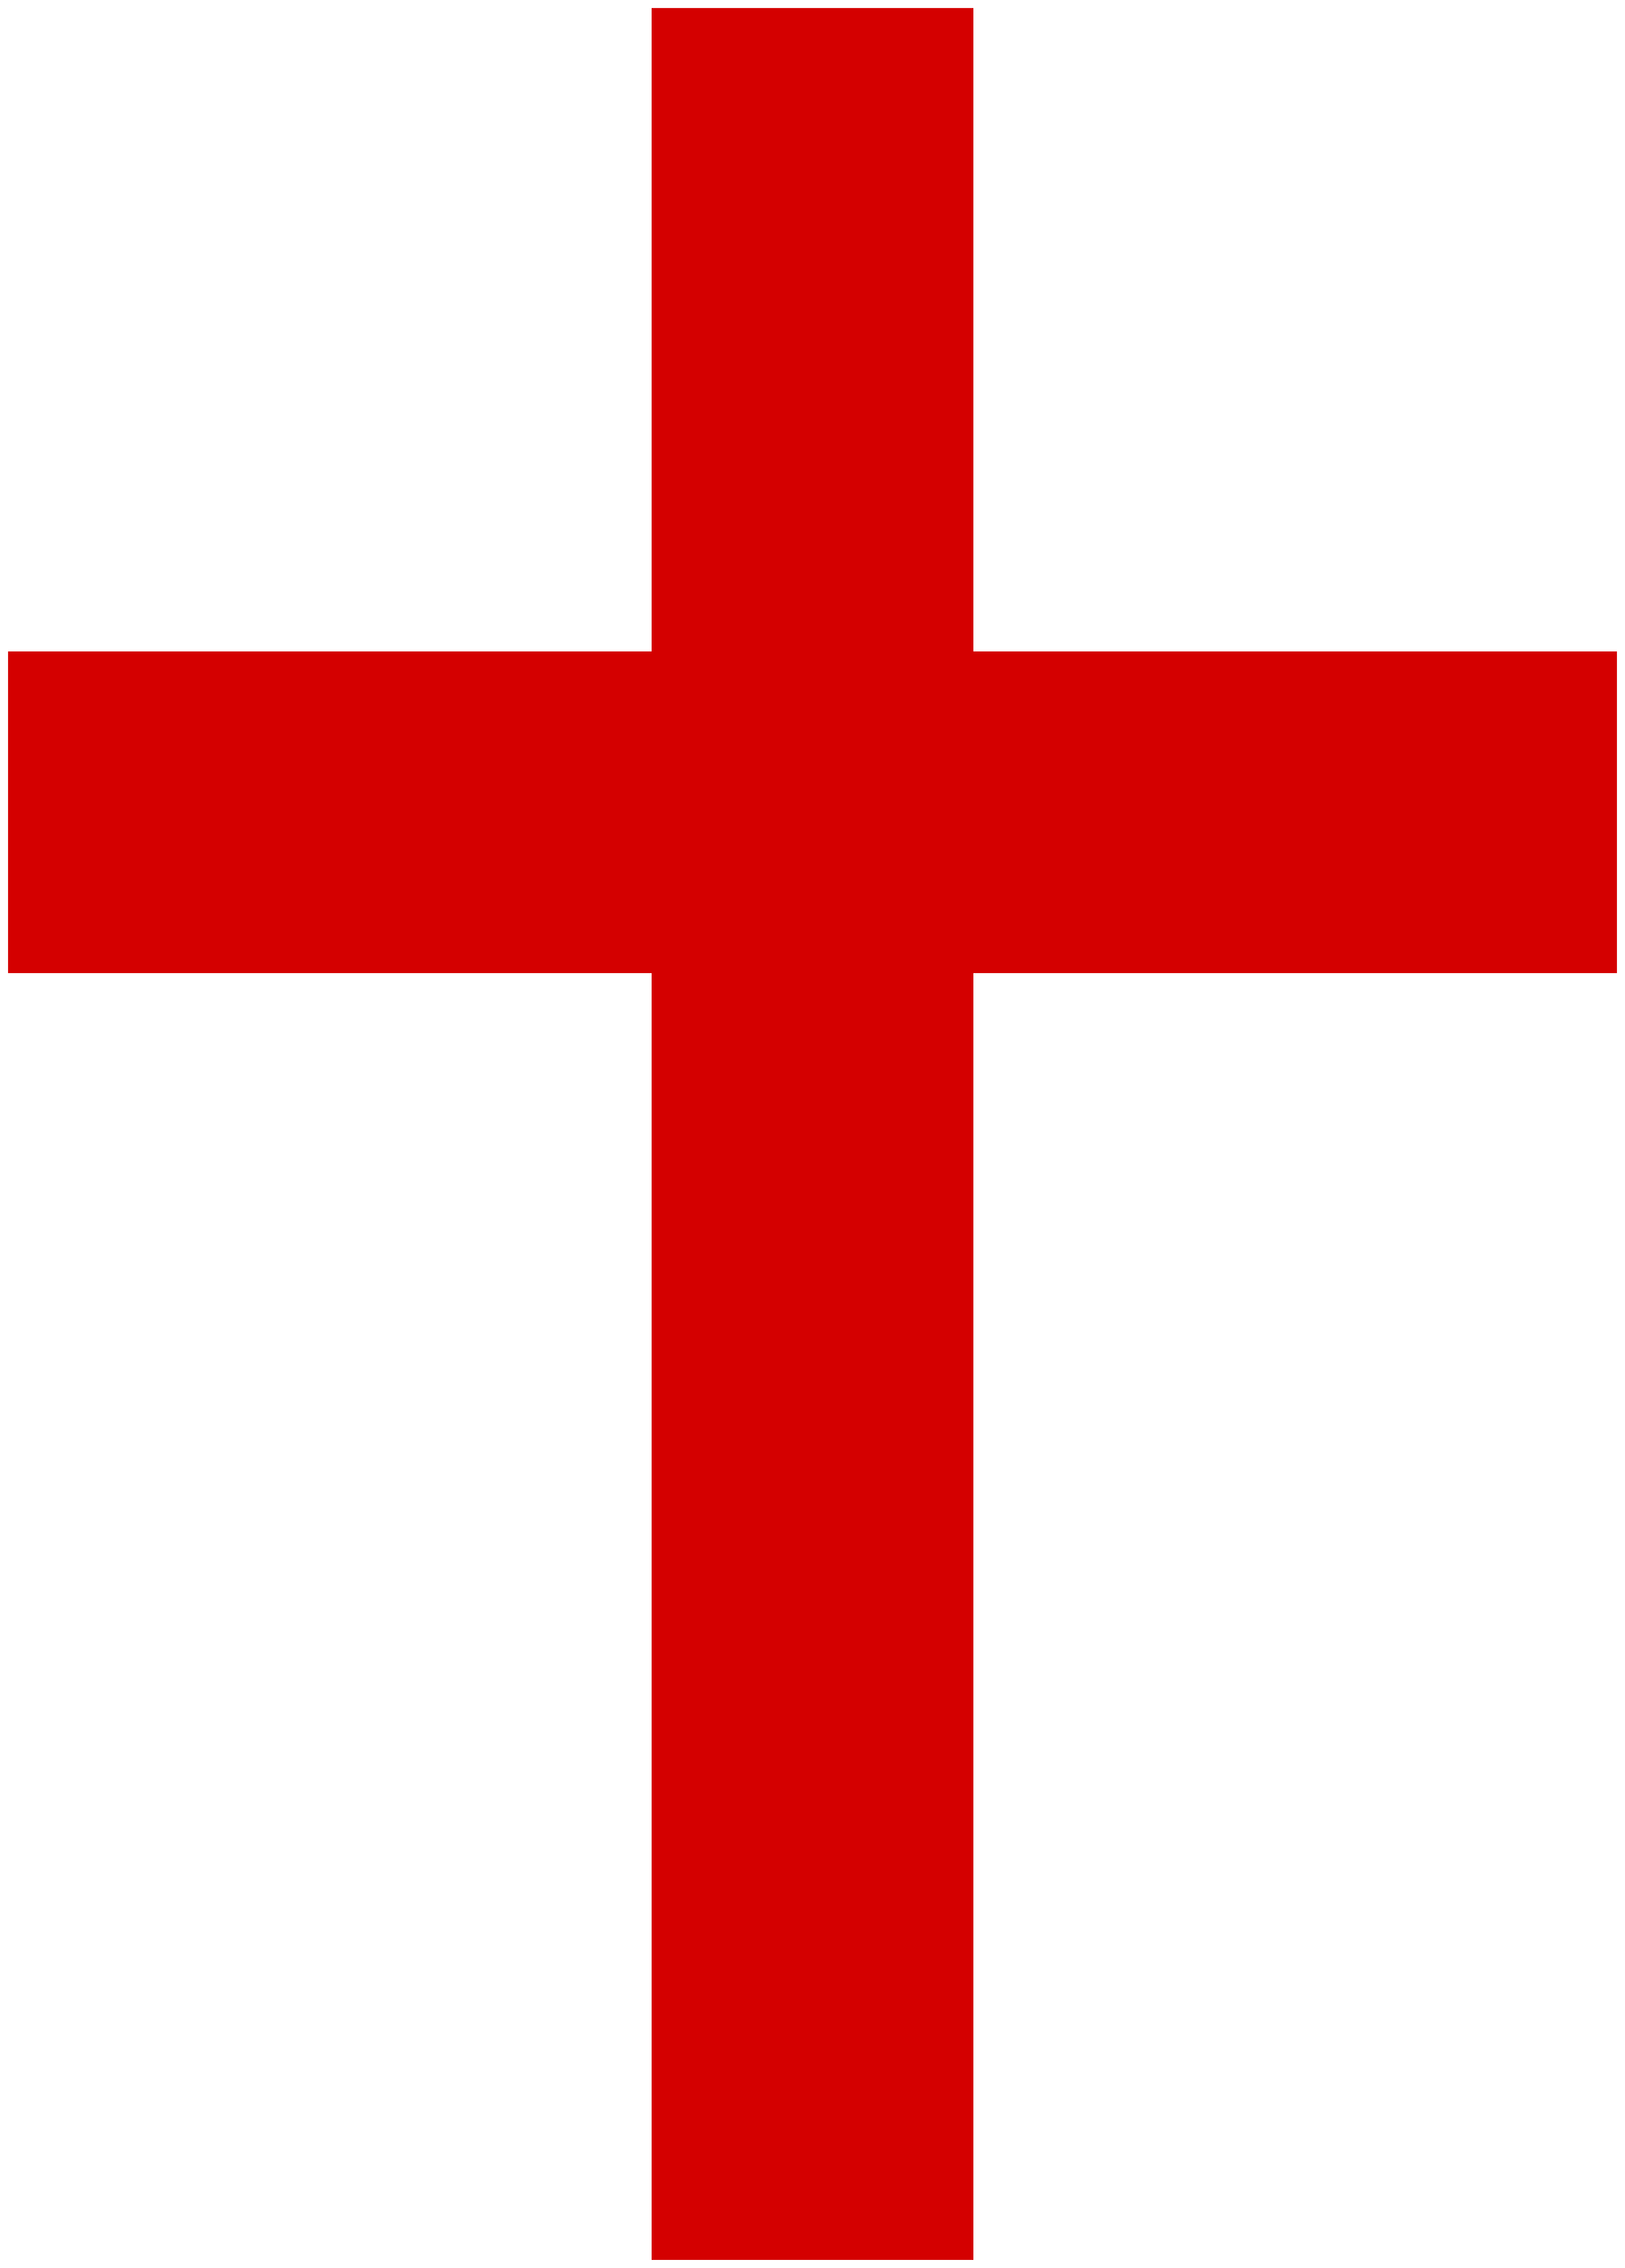 Red Cross clipart svg Cross graphic cross on clipart